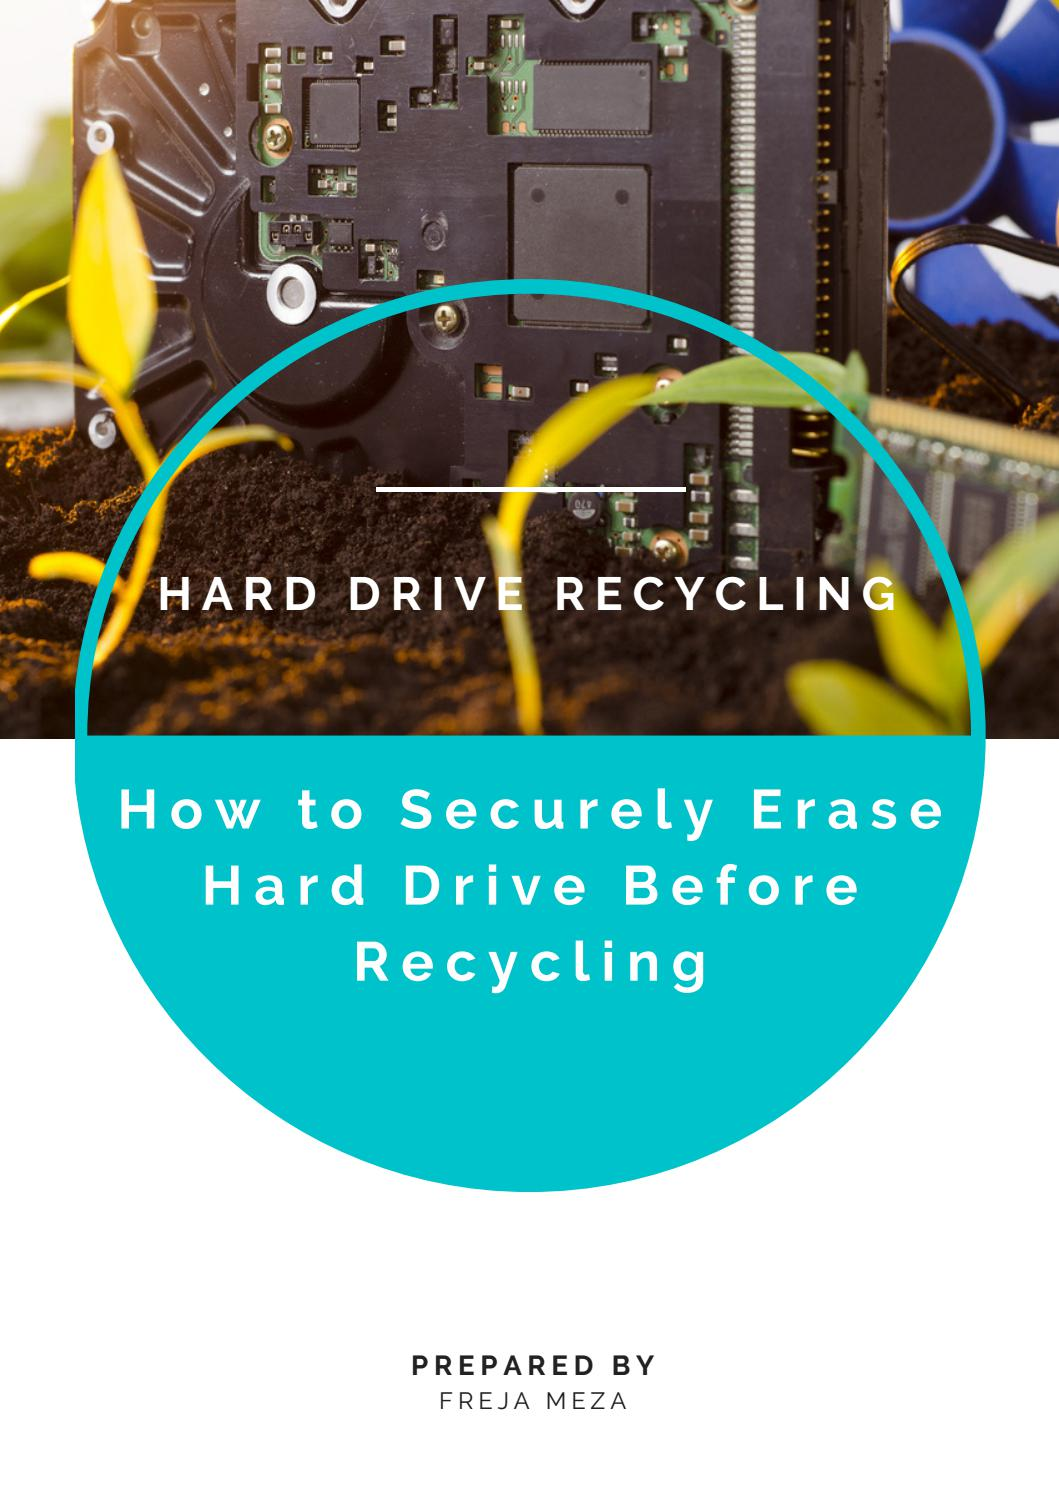 How to Securely Erase Hard Drive Before Recycling